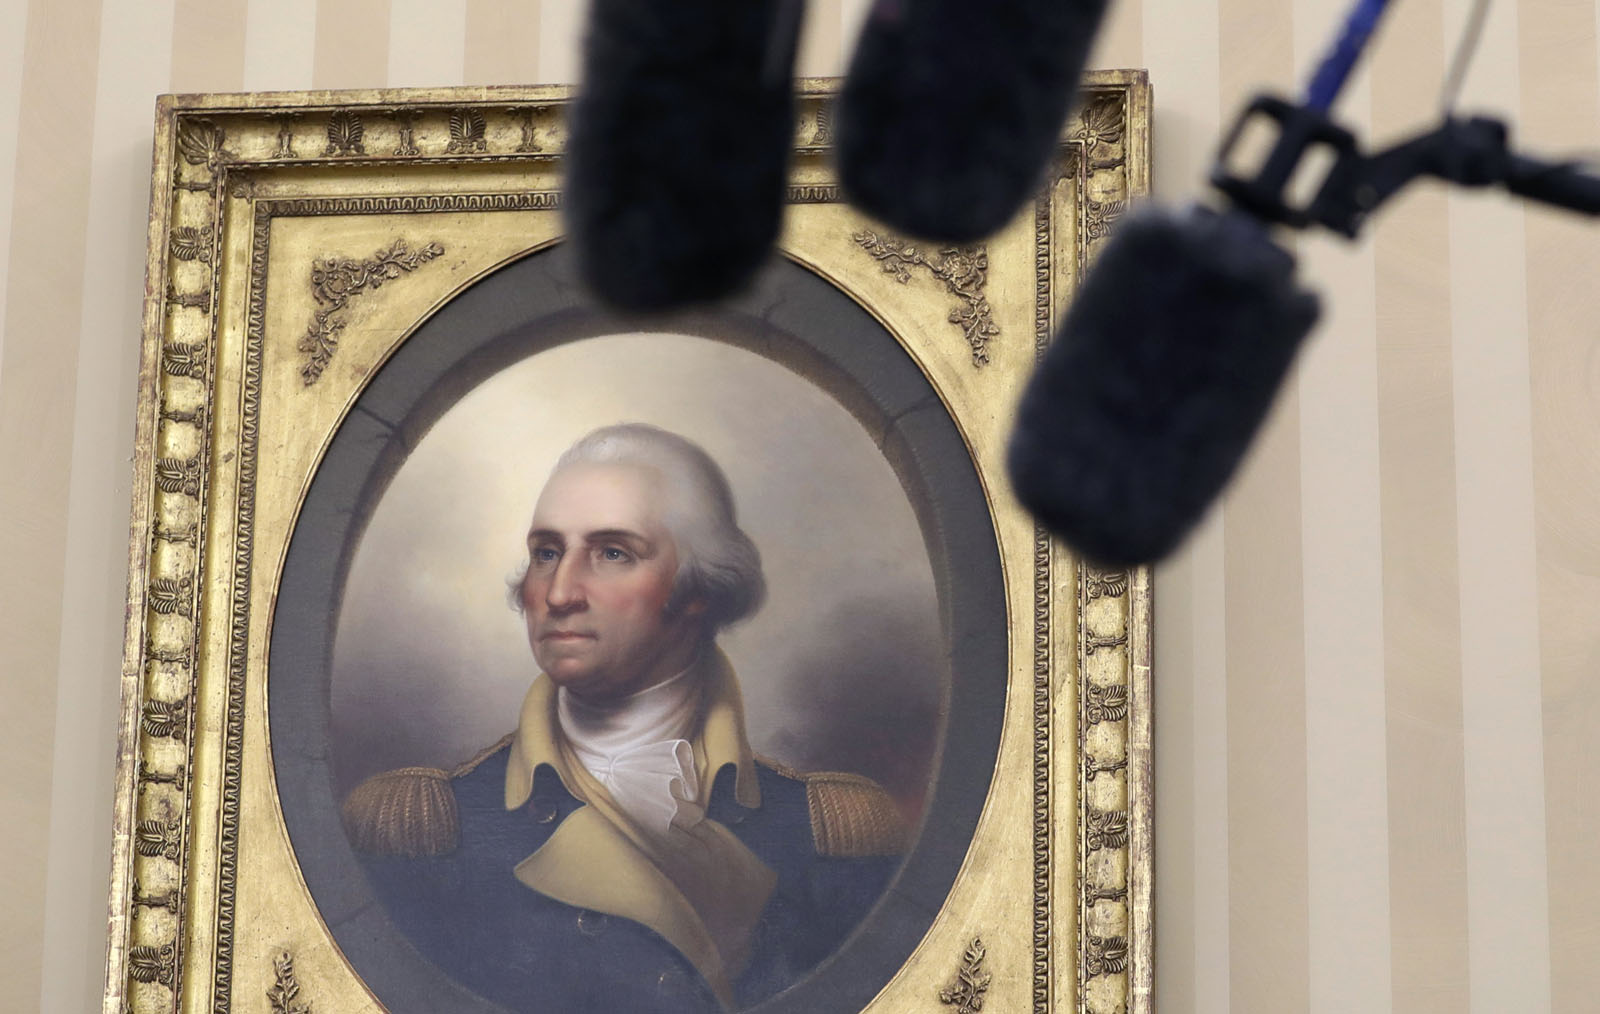 A portrait of George Washington and media microphones are seen in the Oval Office in Washington, Friday, Sept. 16, 2016, as President Barack Obama talks to media at the start of a meeting with business, government, and national security leaders on how the Trans-Pacific Partnership can benefit American workers and businesses and further national security. (AP Photo/Carolyn Kaster)